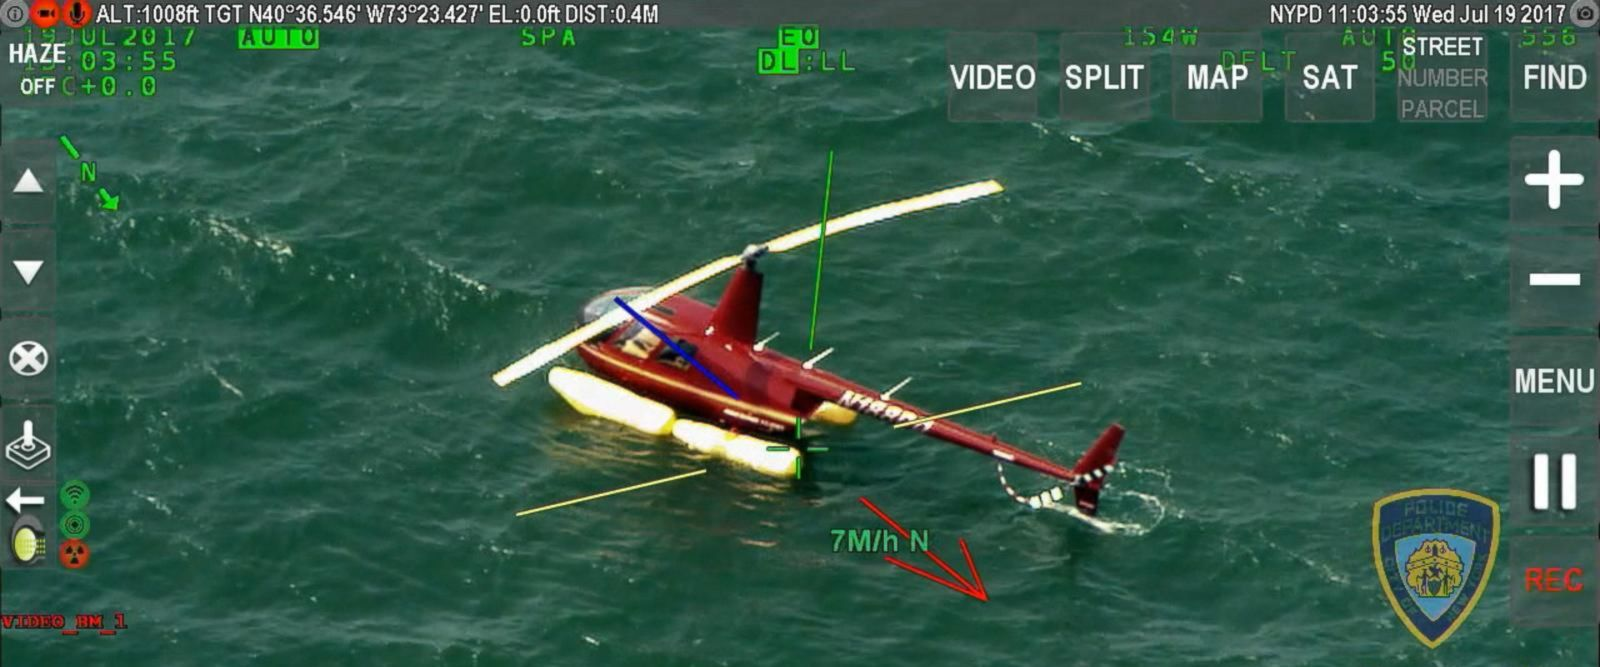 VIDEO: Helicopter makes emergency landing in waters off Long Island, NY